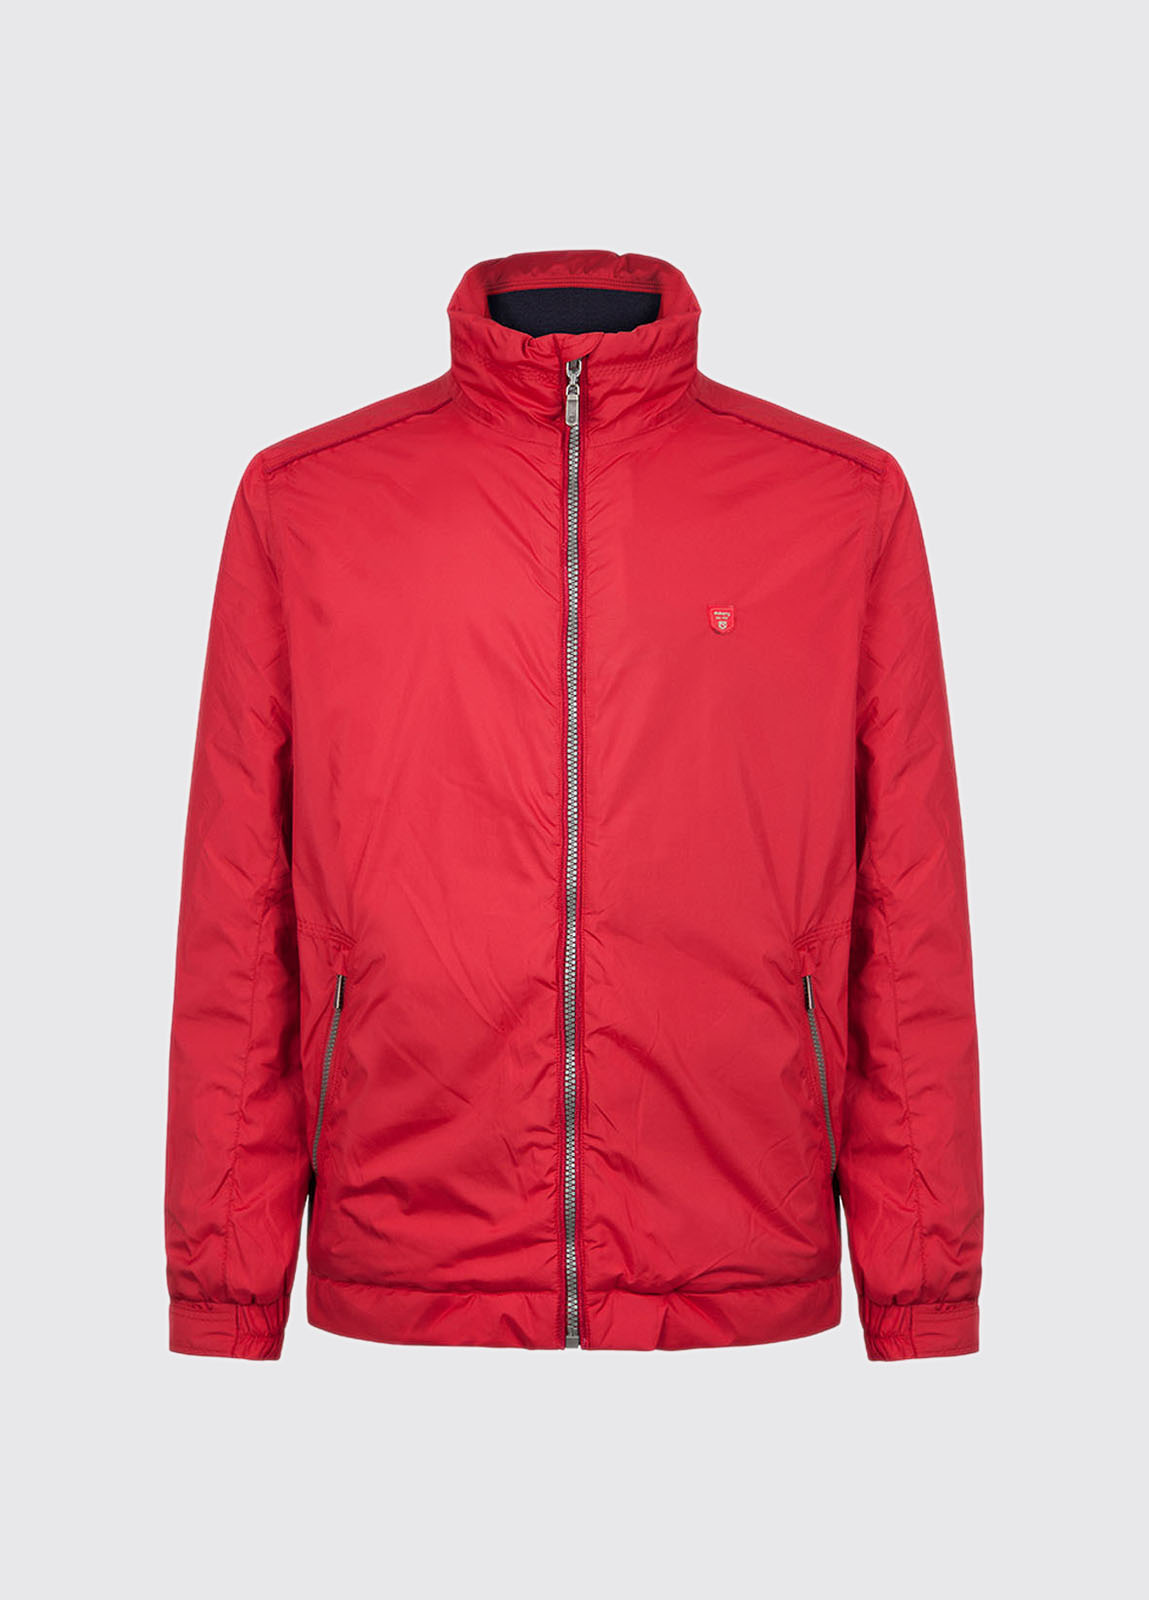 Starboard lightweight jacket - Red